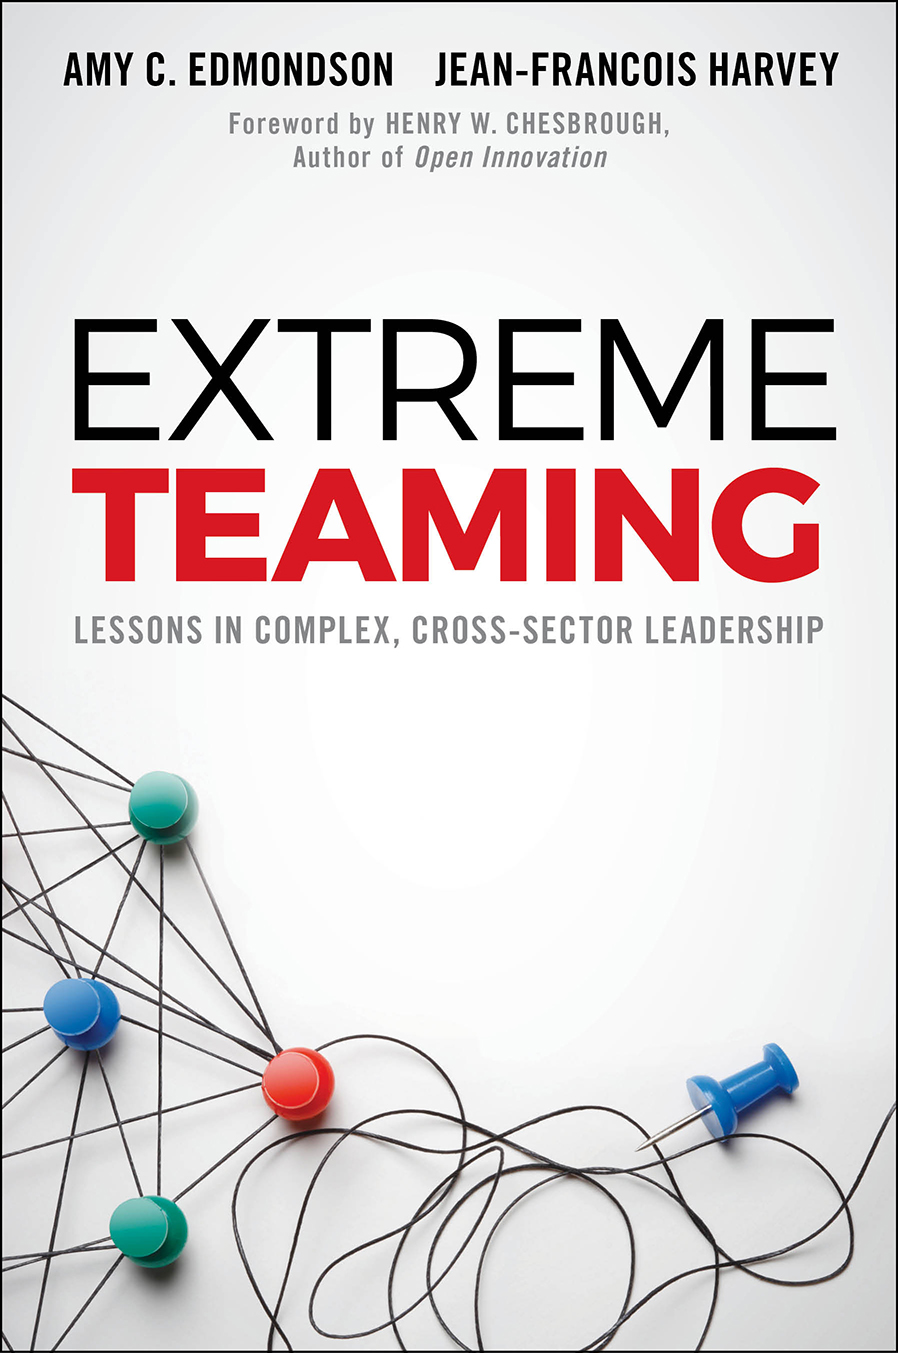 Book cover for Extreme Teaming:  Lessons in Complex, Cross-Sector Leadership, a book by Amy C. Edmondson, Jean-François  Harvey, Henry W. Chesbrough